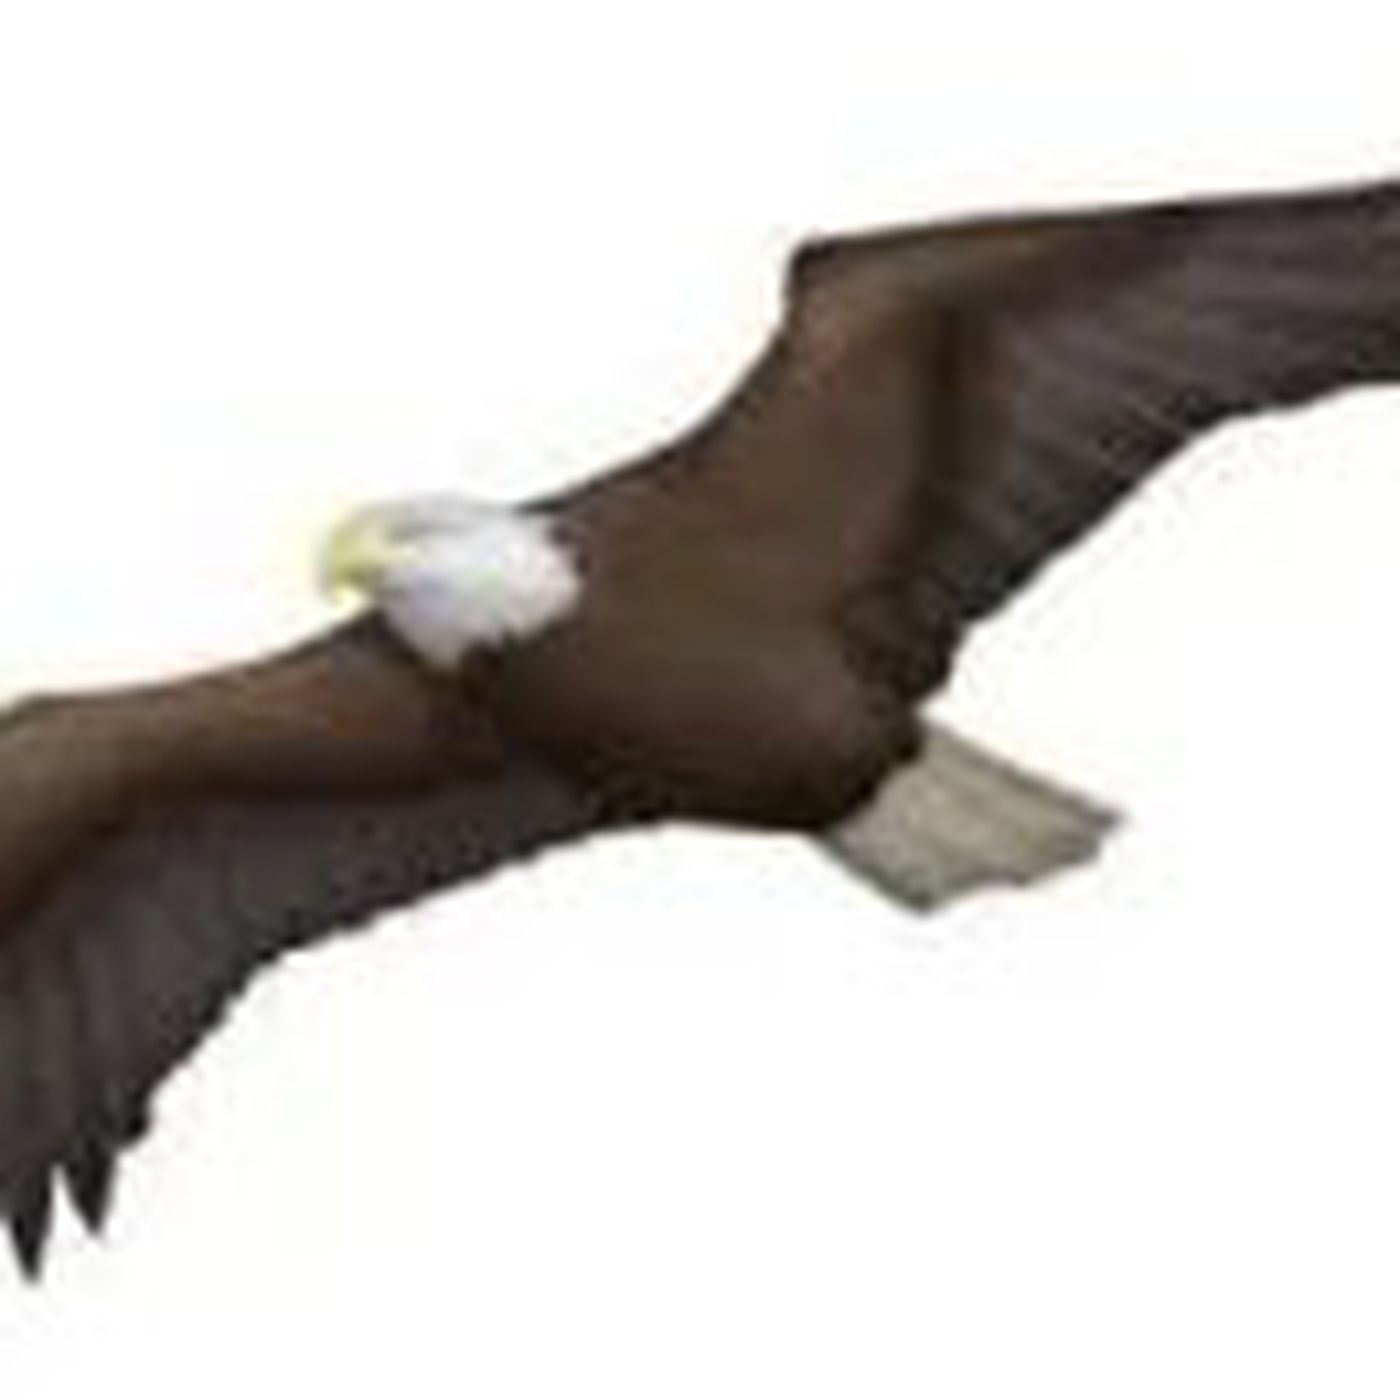 BIG NEWS: There's finally going to be an Eagle emoji on your